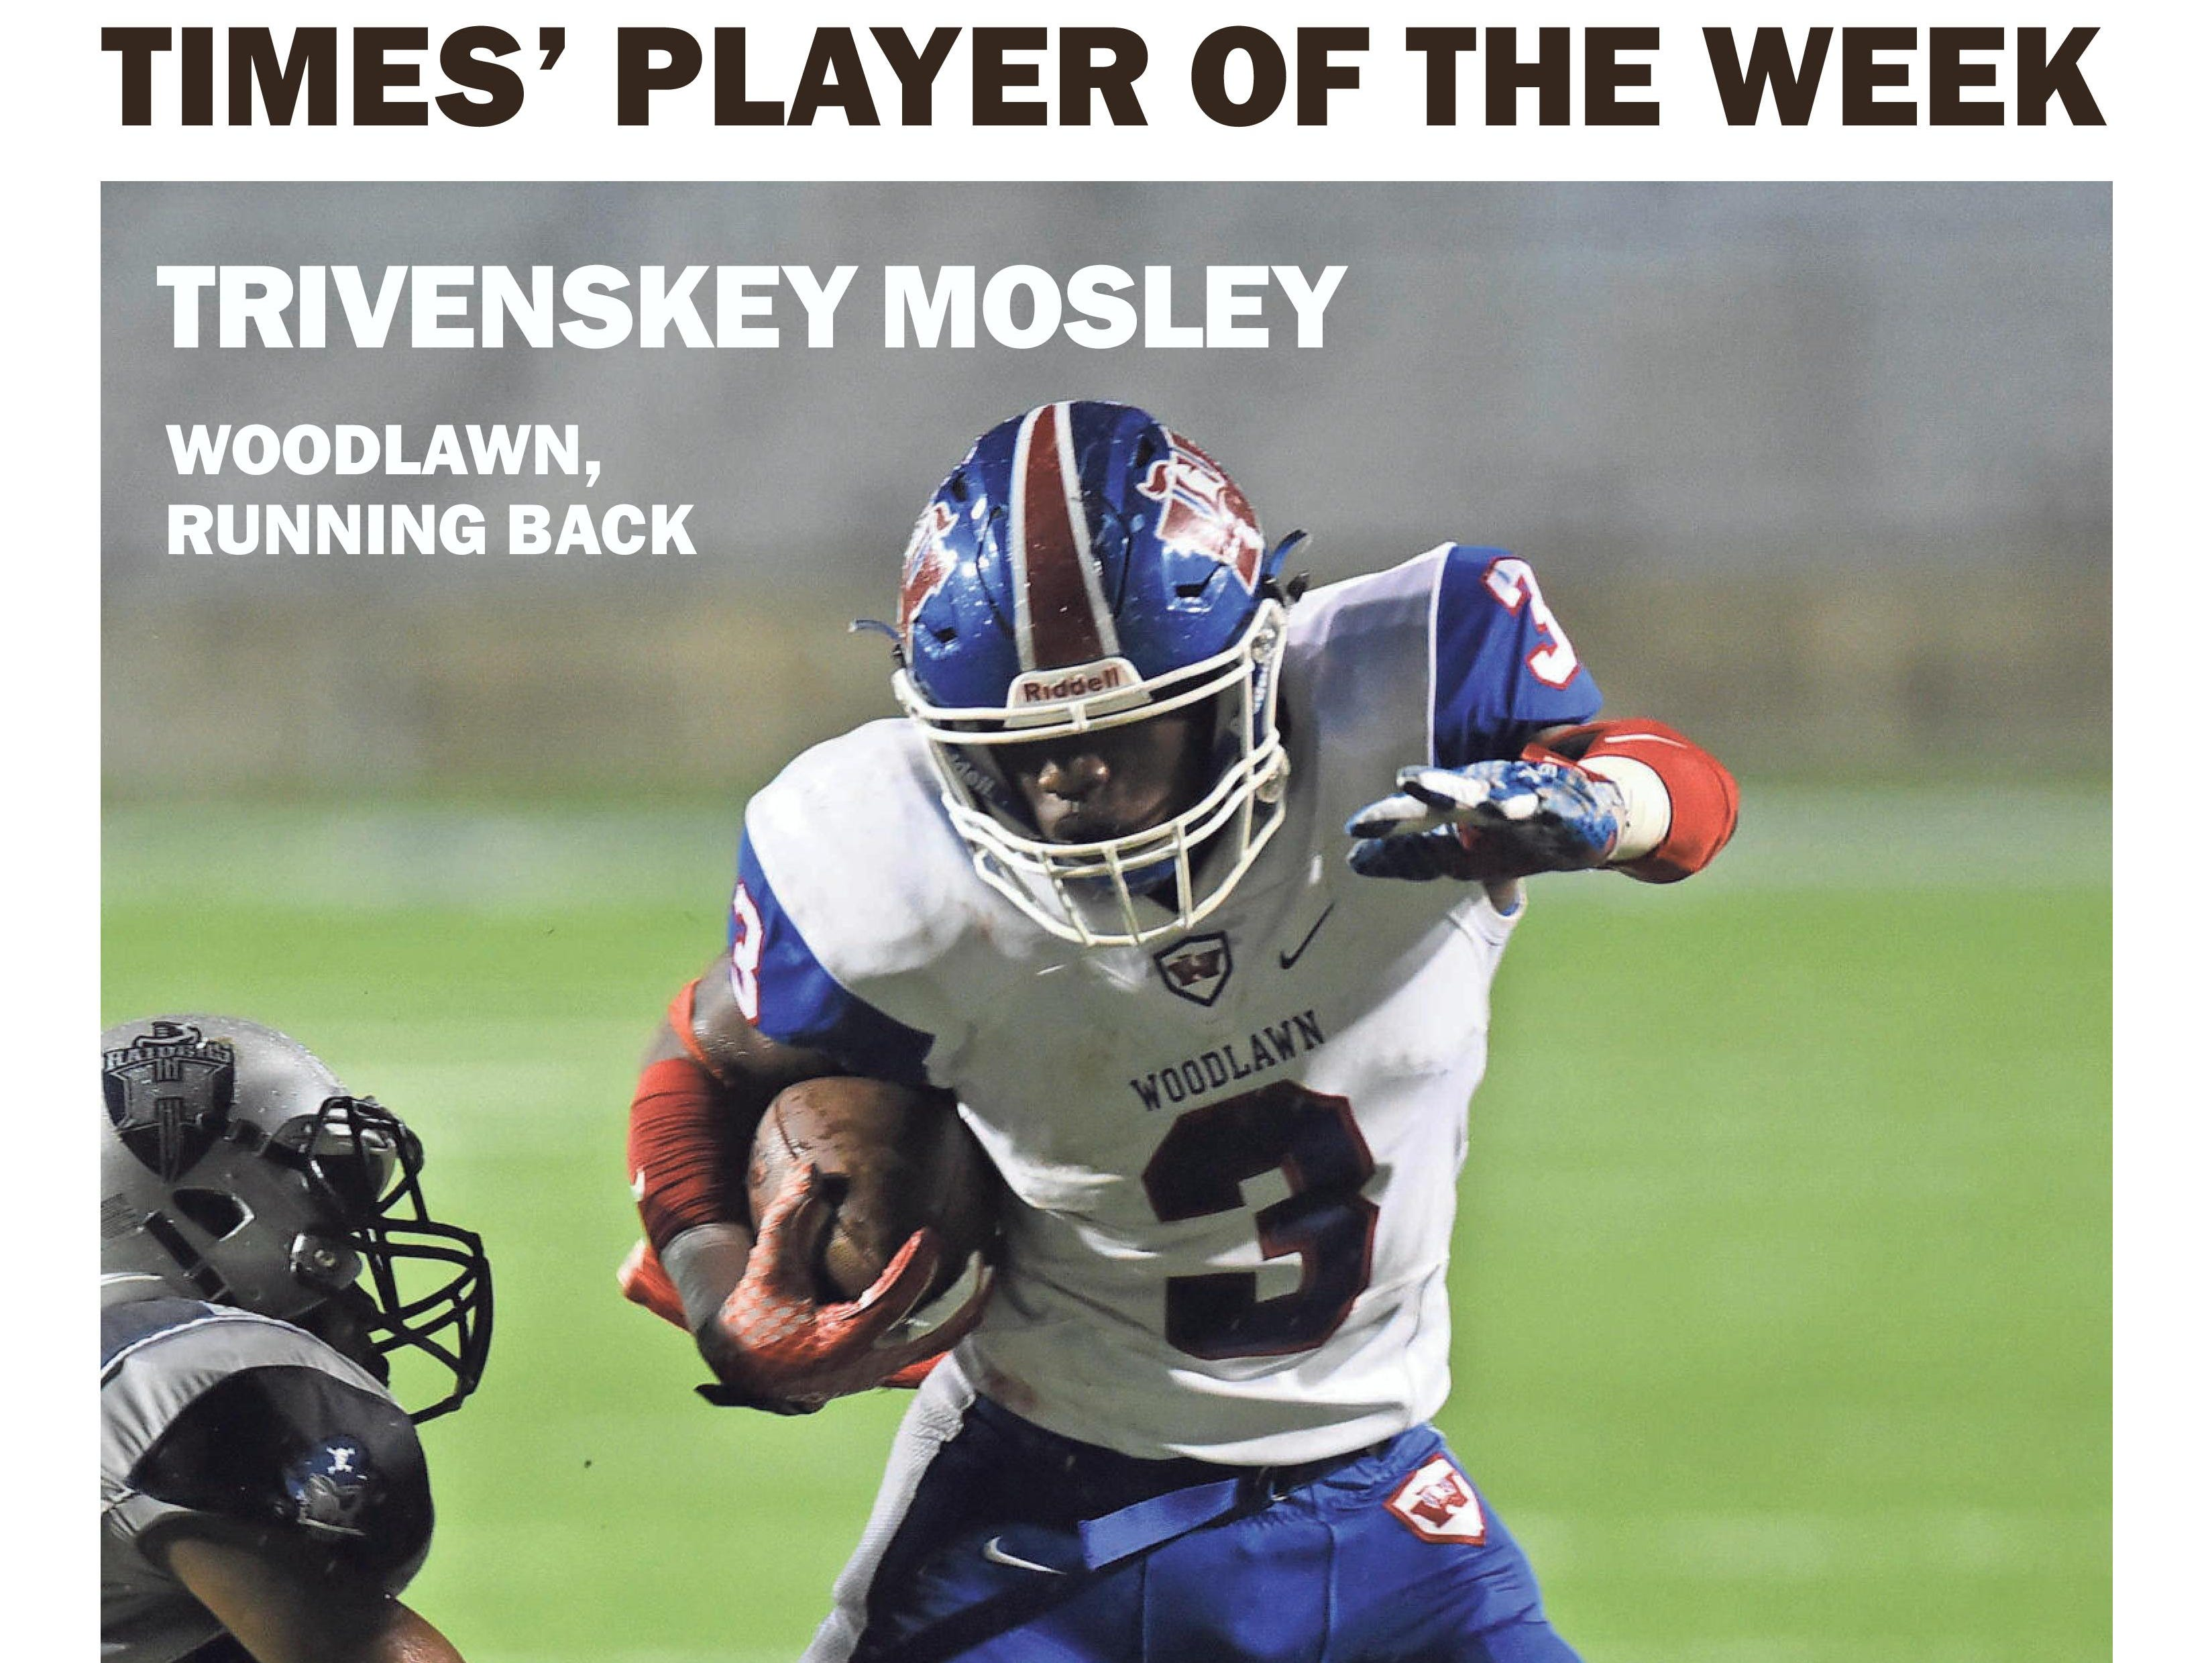 Woodlawn running back Trivenskey Mosley earned (Week 8) Player of the Week honors.